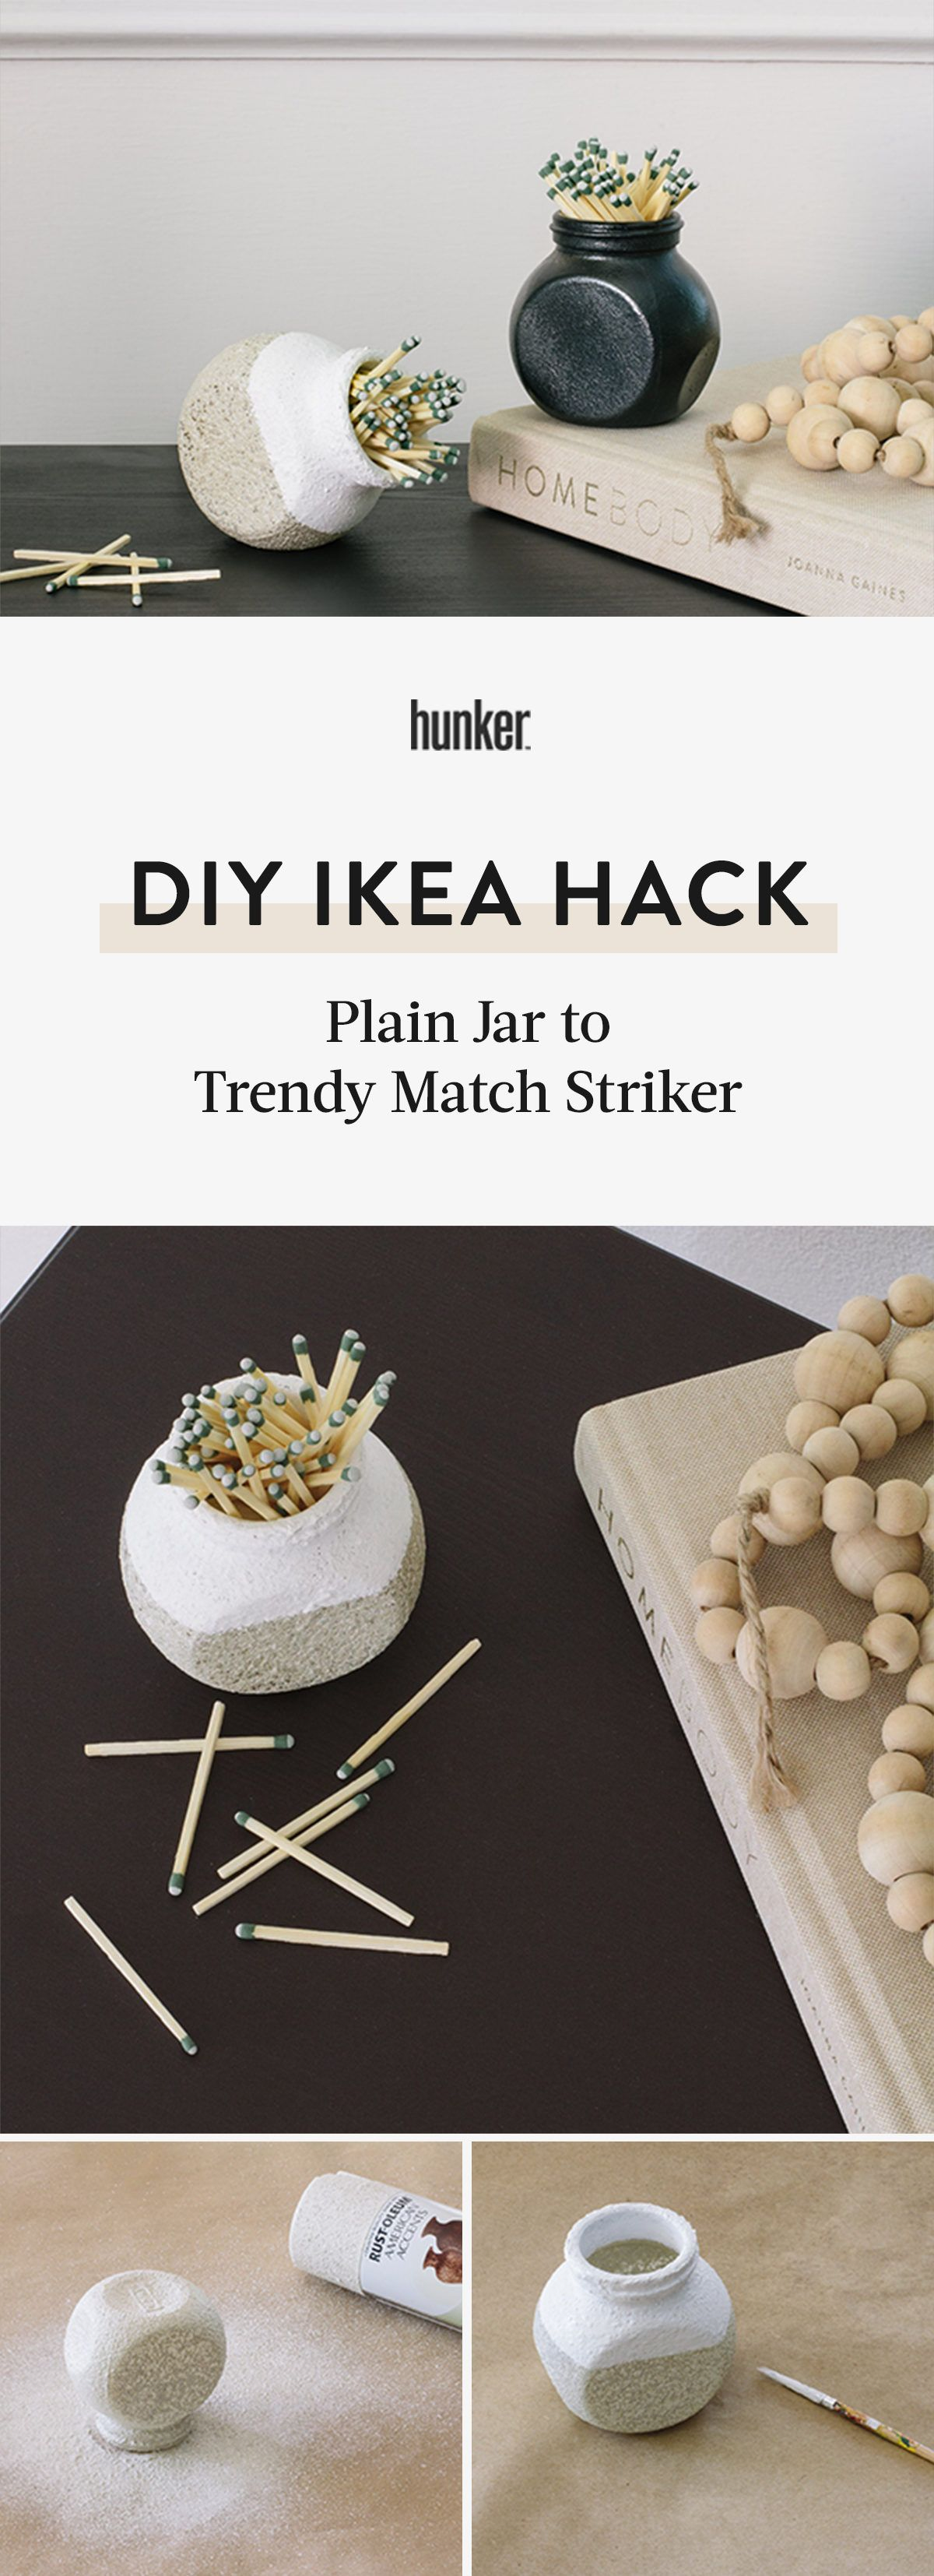 Photo of Before & After: From Plain IKEA Jar to Trendy Match Striker